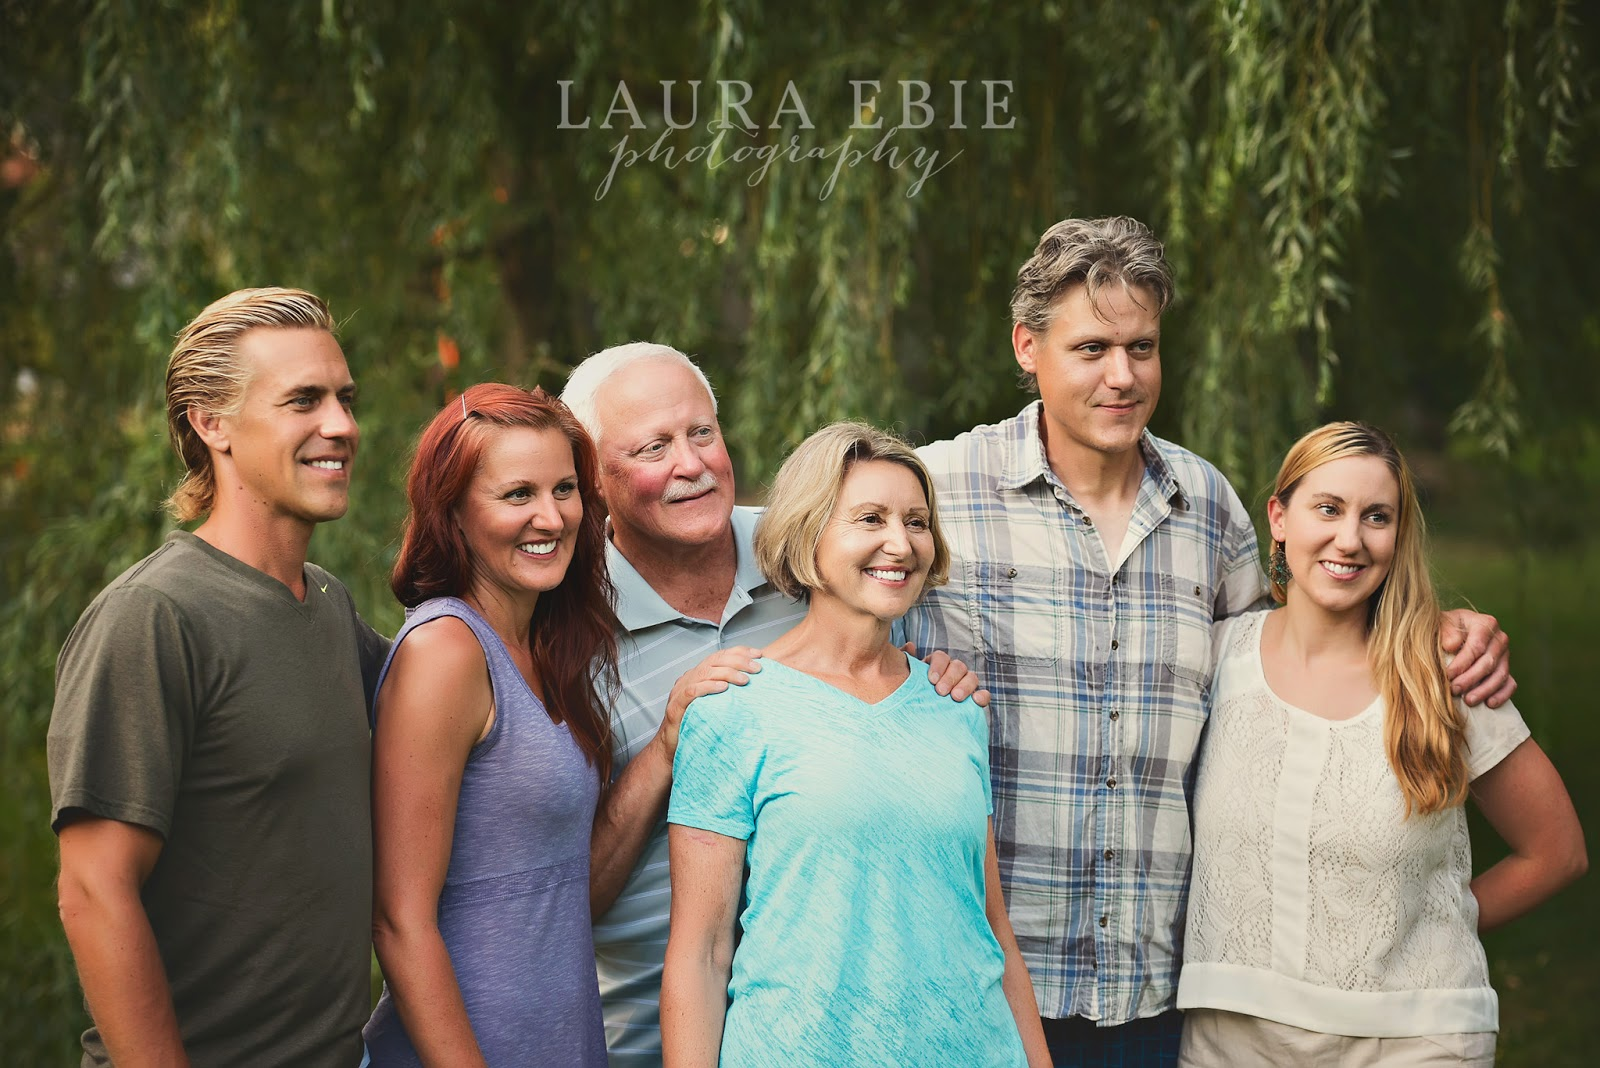 laura ebie photography the blog pin it now by laura ebie